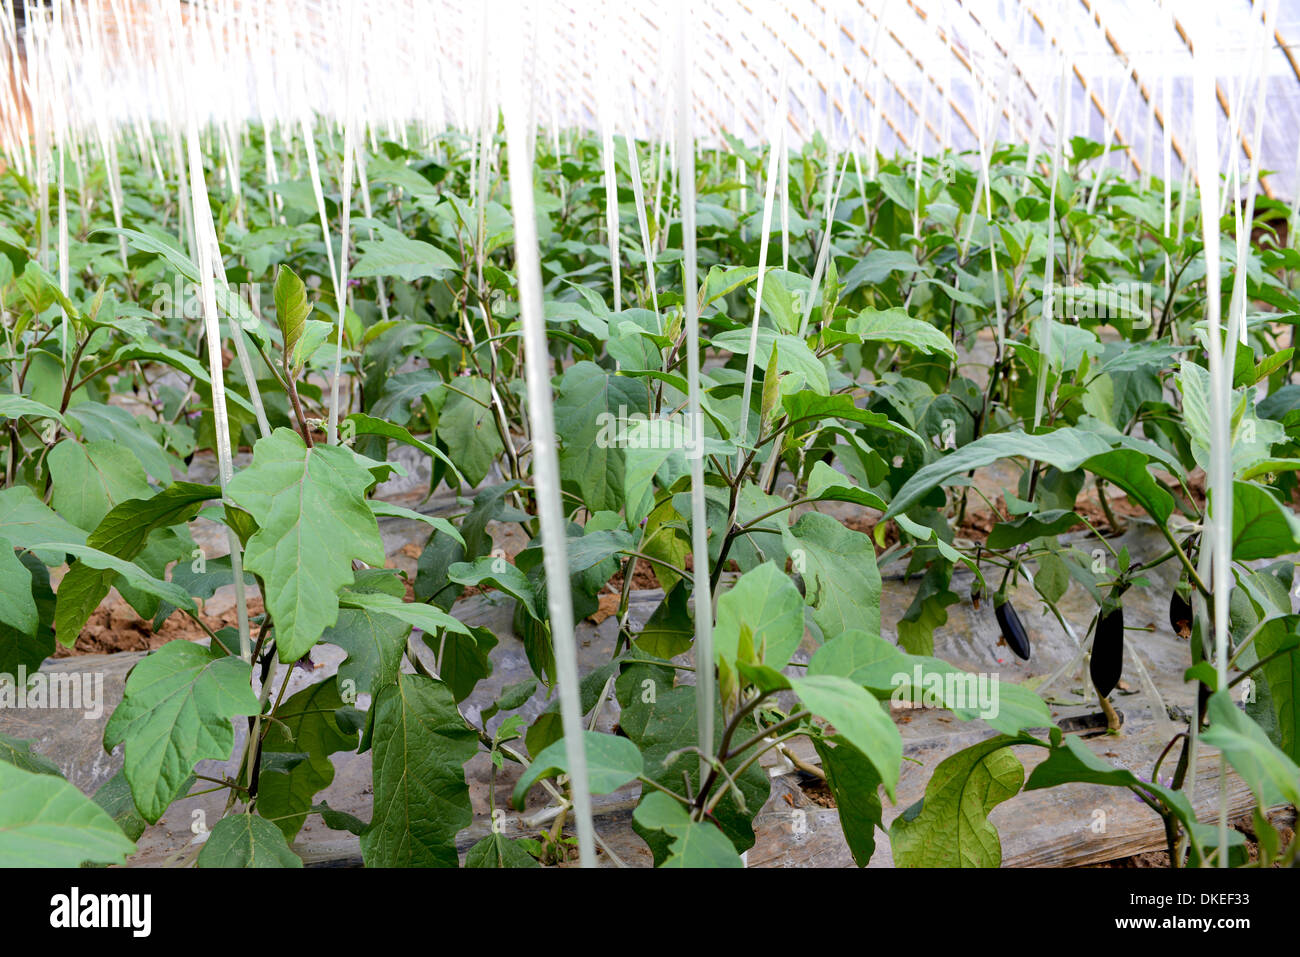 Planting eggplant seedlings and greenhouses in 2018 64